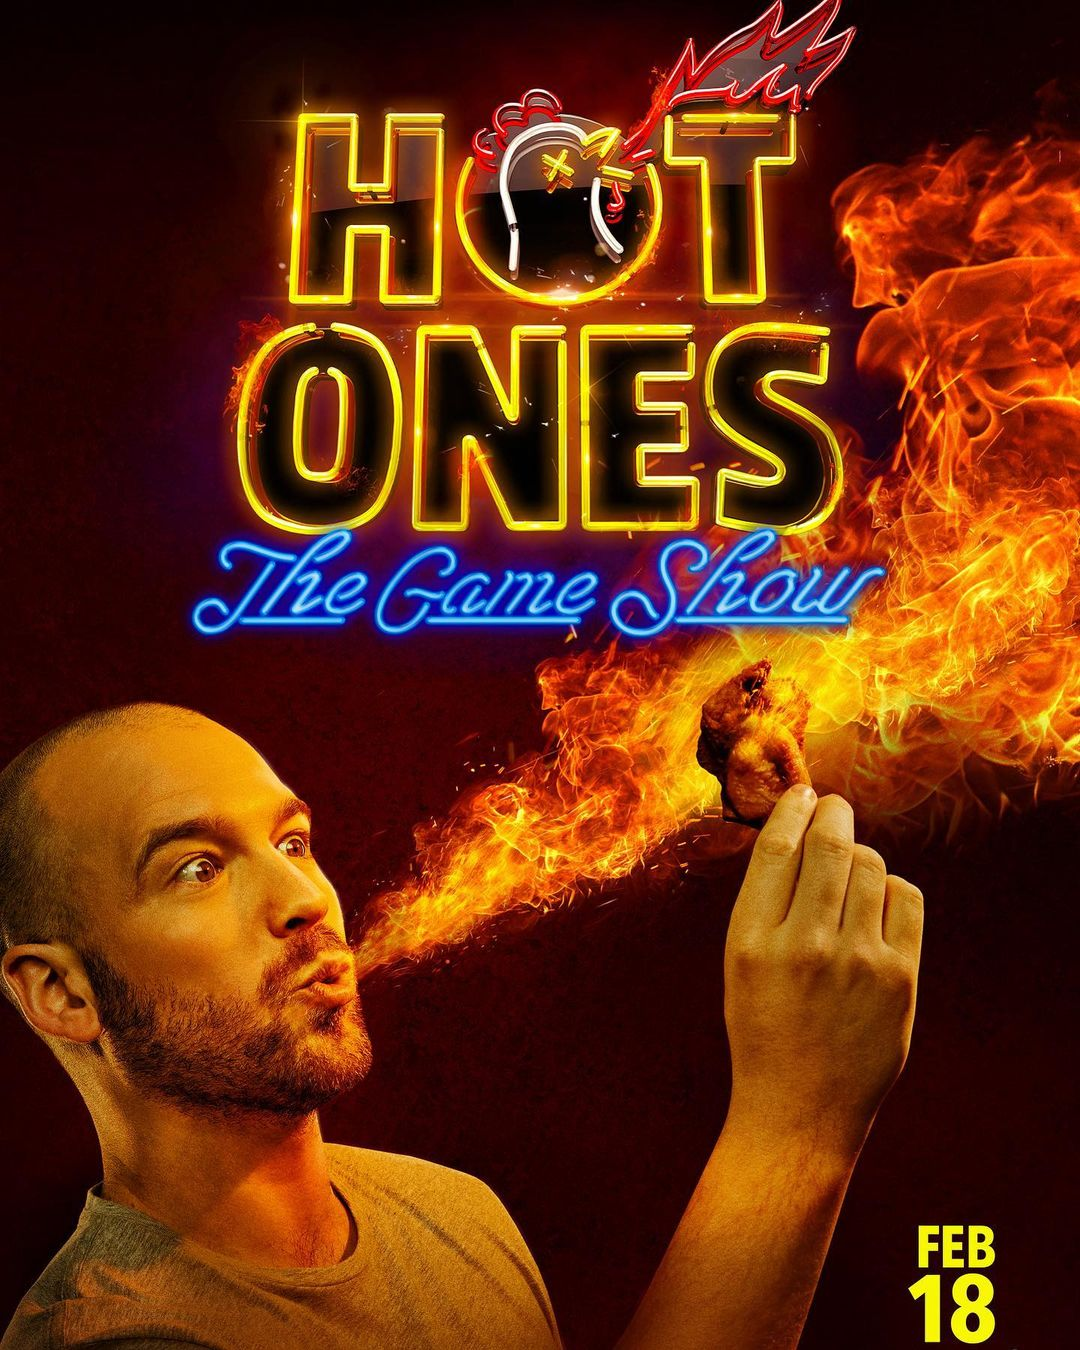 Sean Evans hot ones show